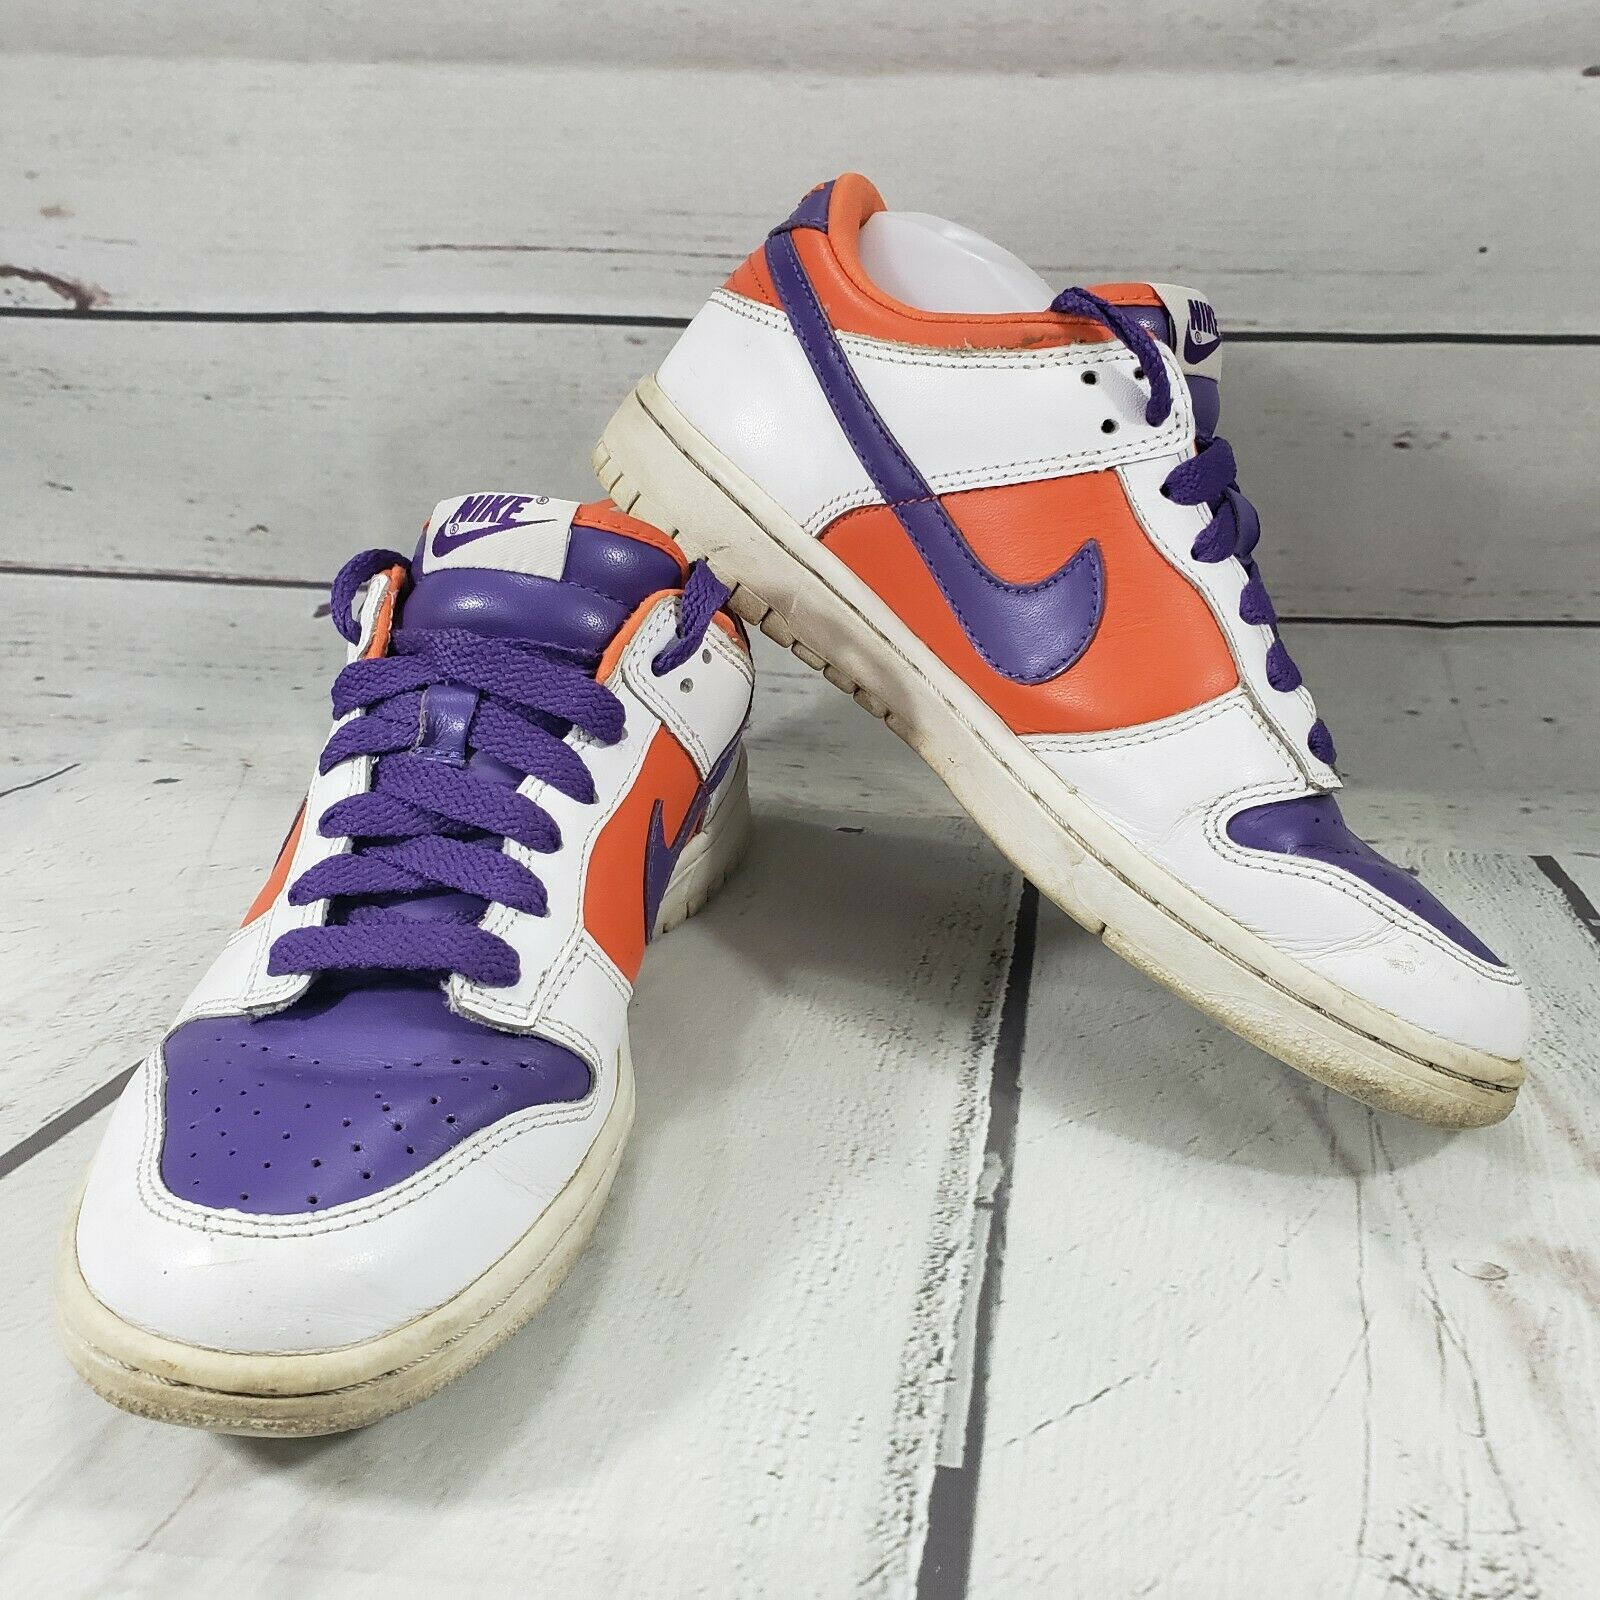 Nike shoes Size 8 iD Dunk Low 2008 Purple orange White Used Condition